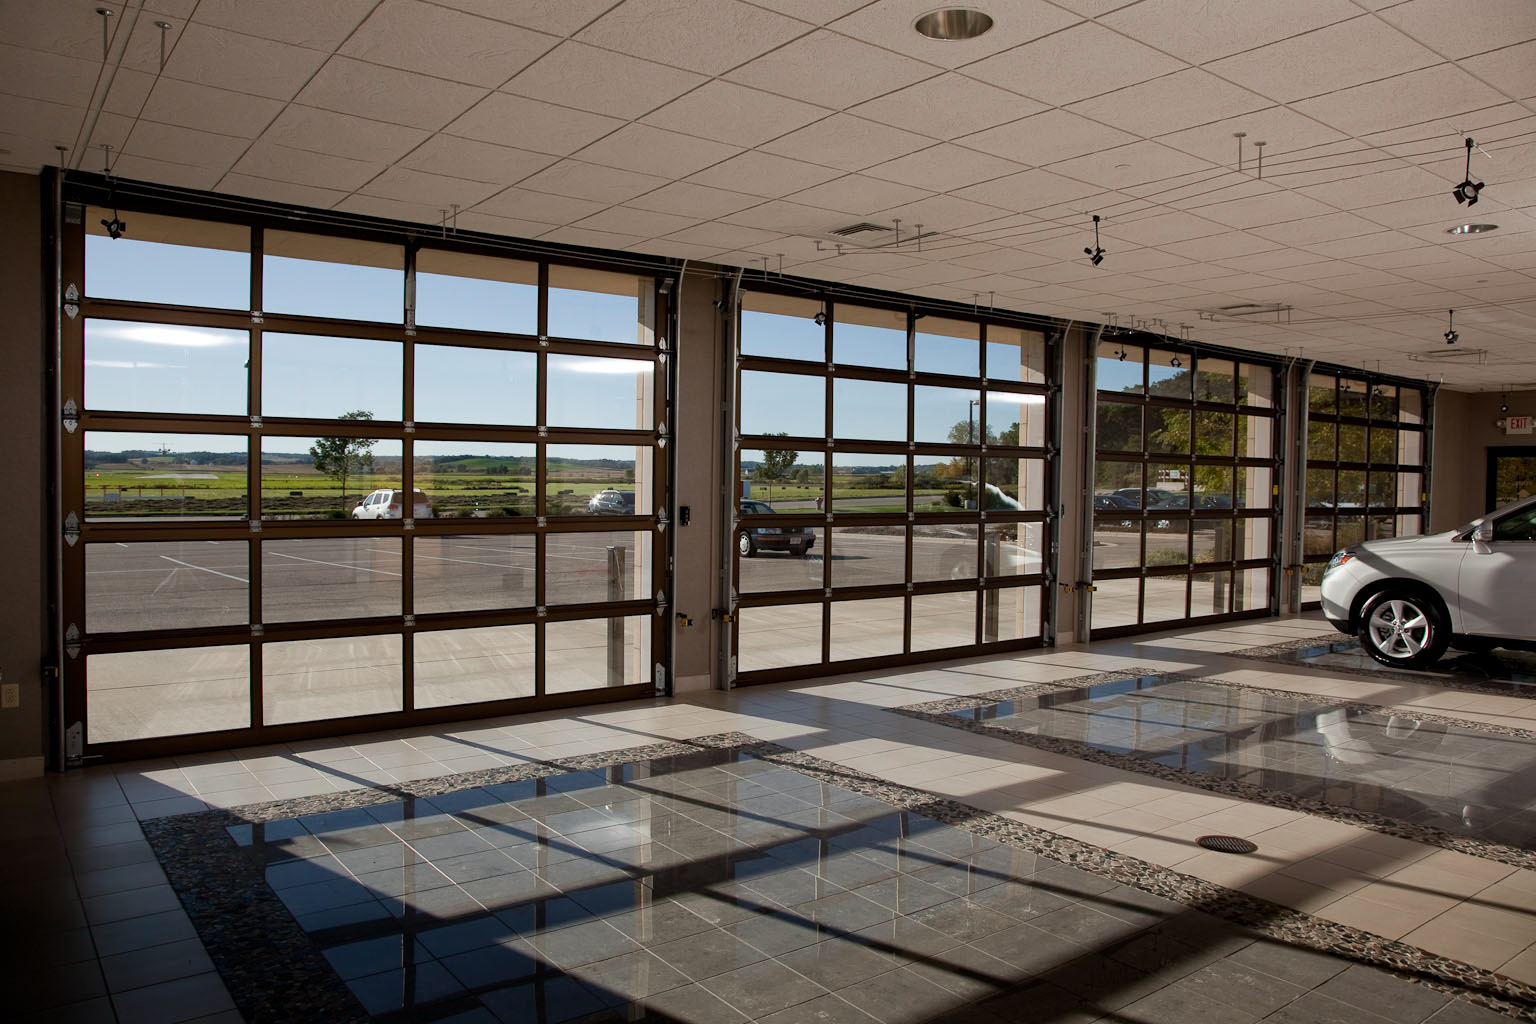 1024 #436888 Gfx/products/000117/IMG 1548.jpg pic Residential Garage Doors Direct 38211536